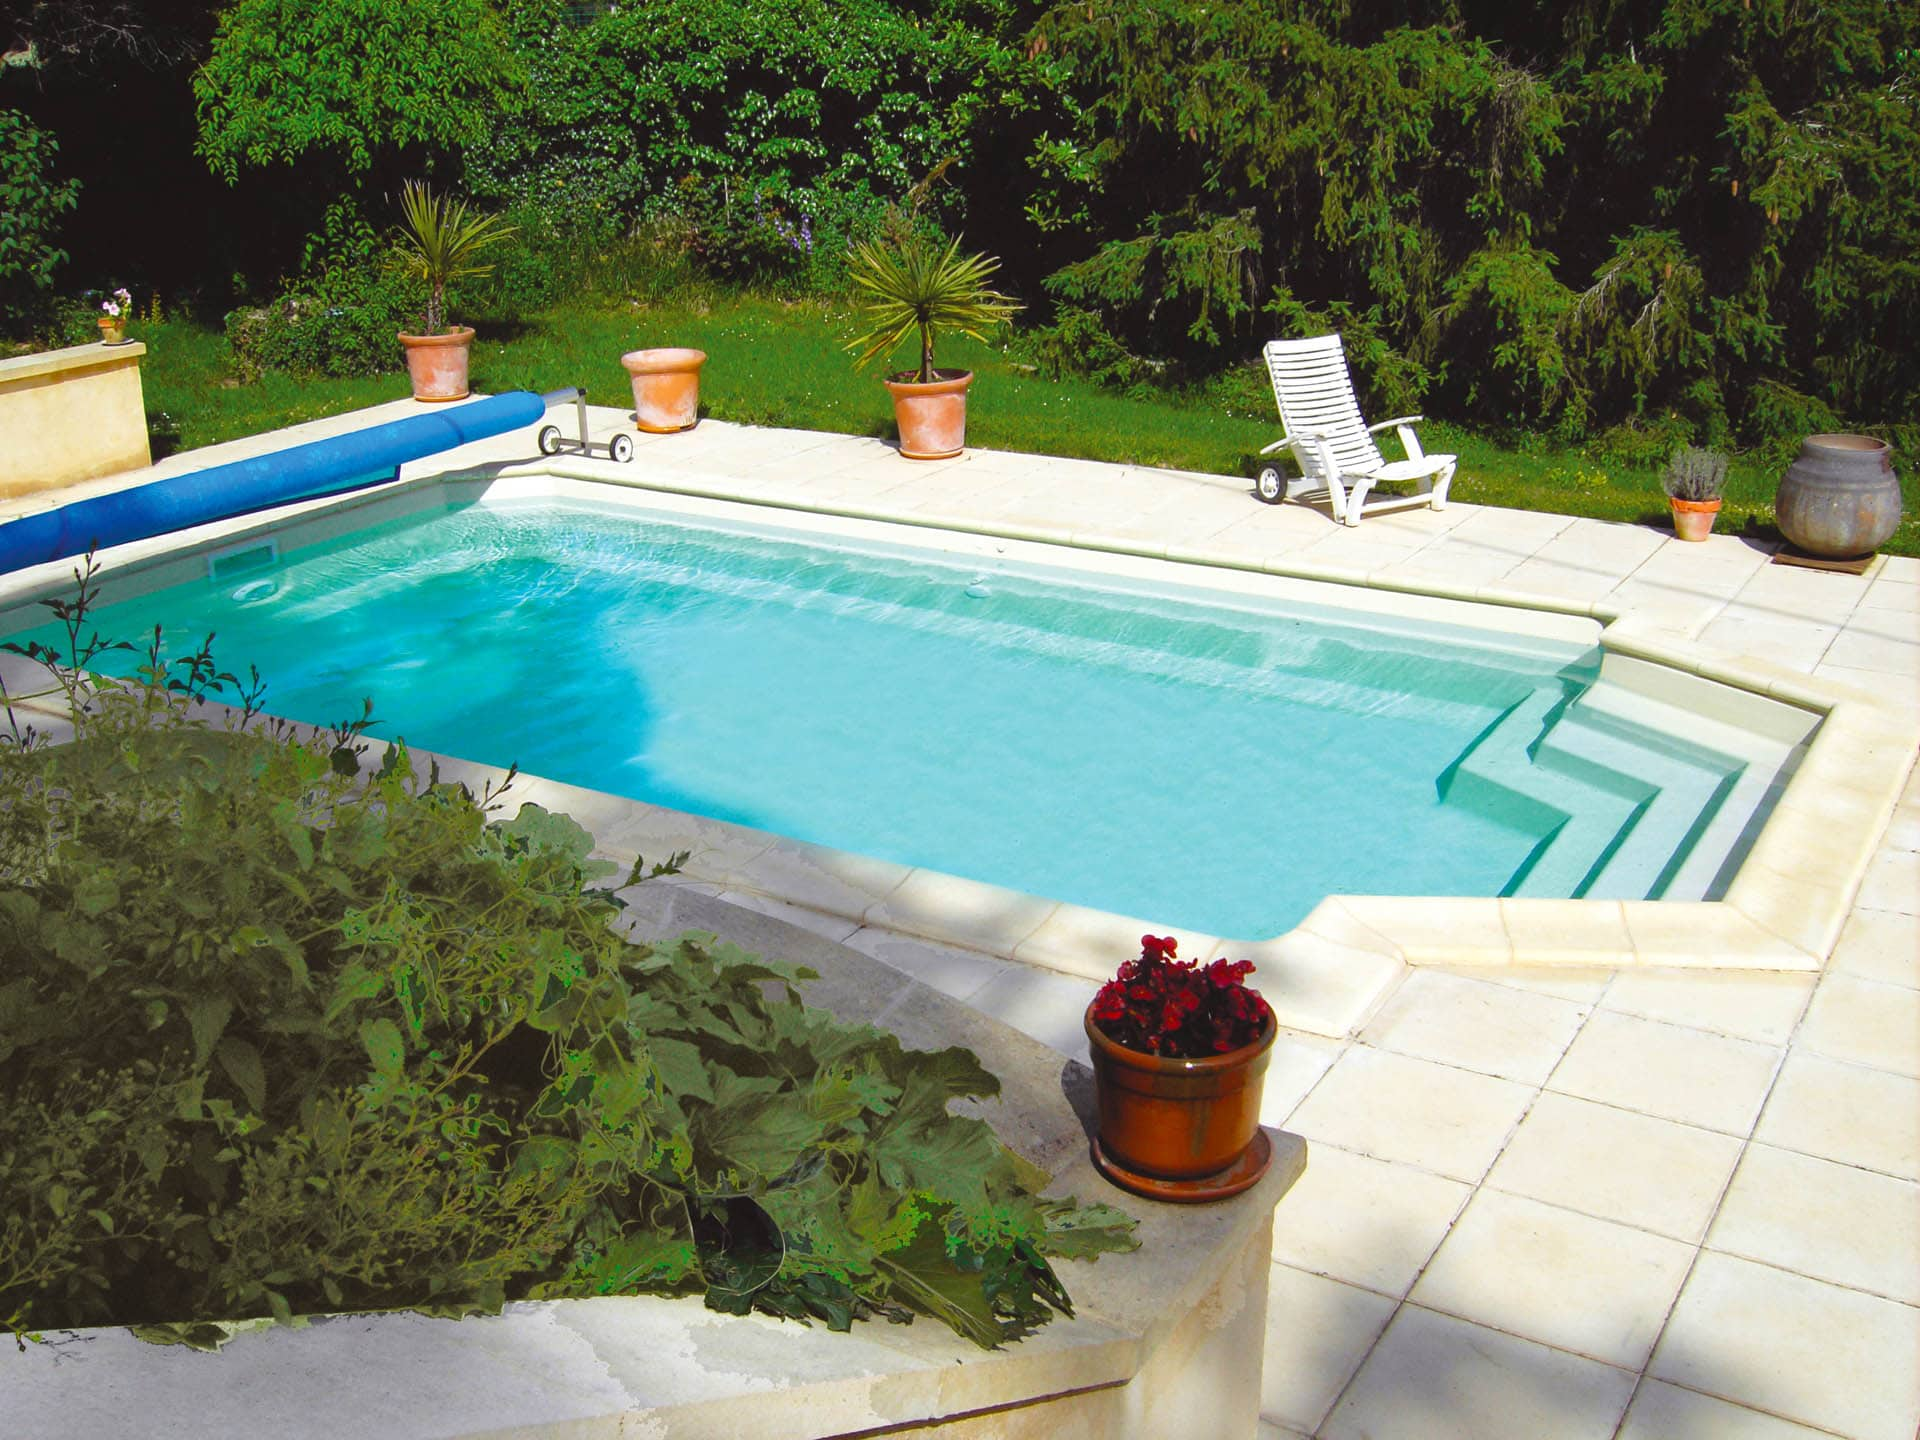 Piscine Coque Polyester Forme Rectangulaire 7x4 A Fond Plat Nevada 1 Piscines Ibiza